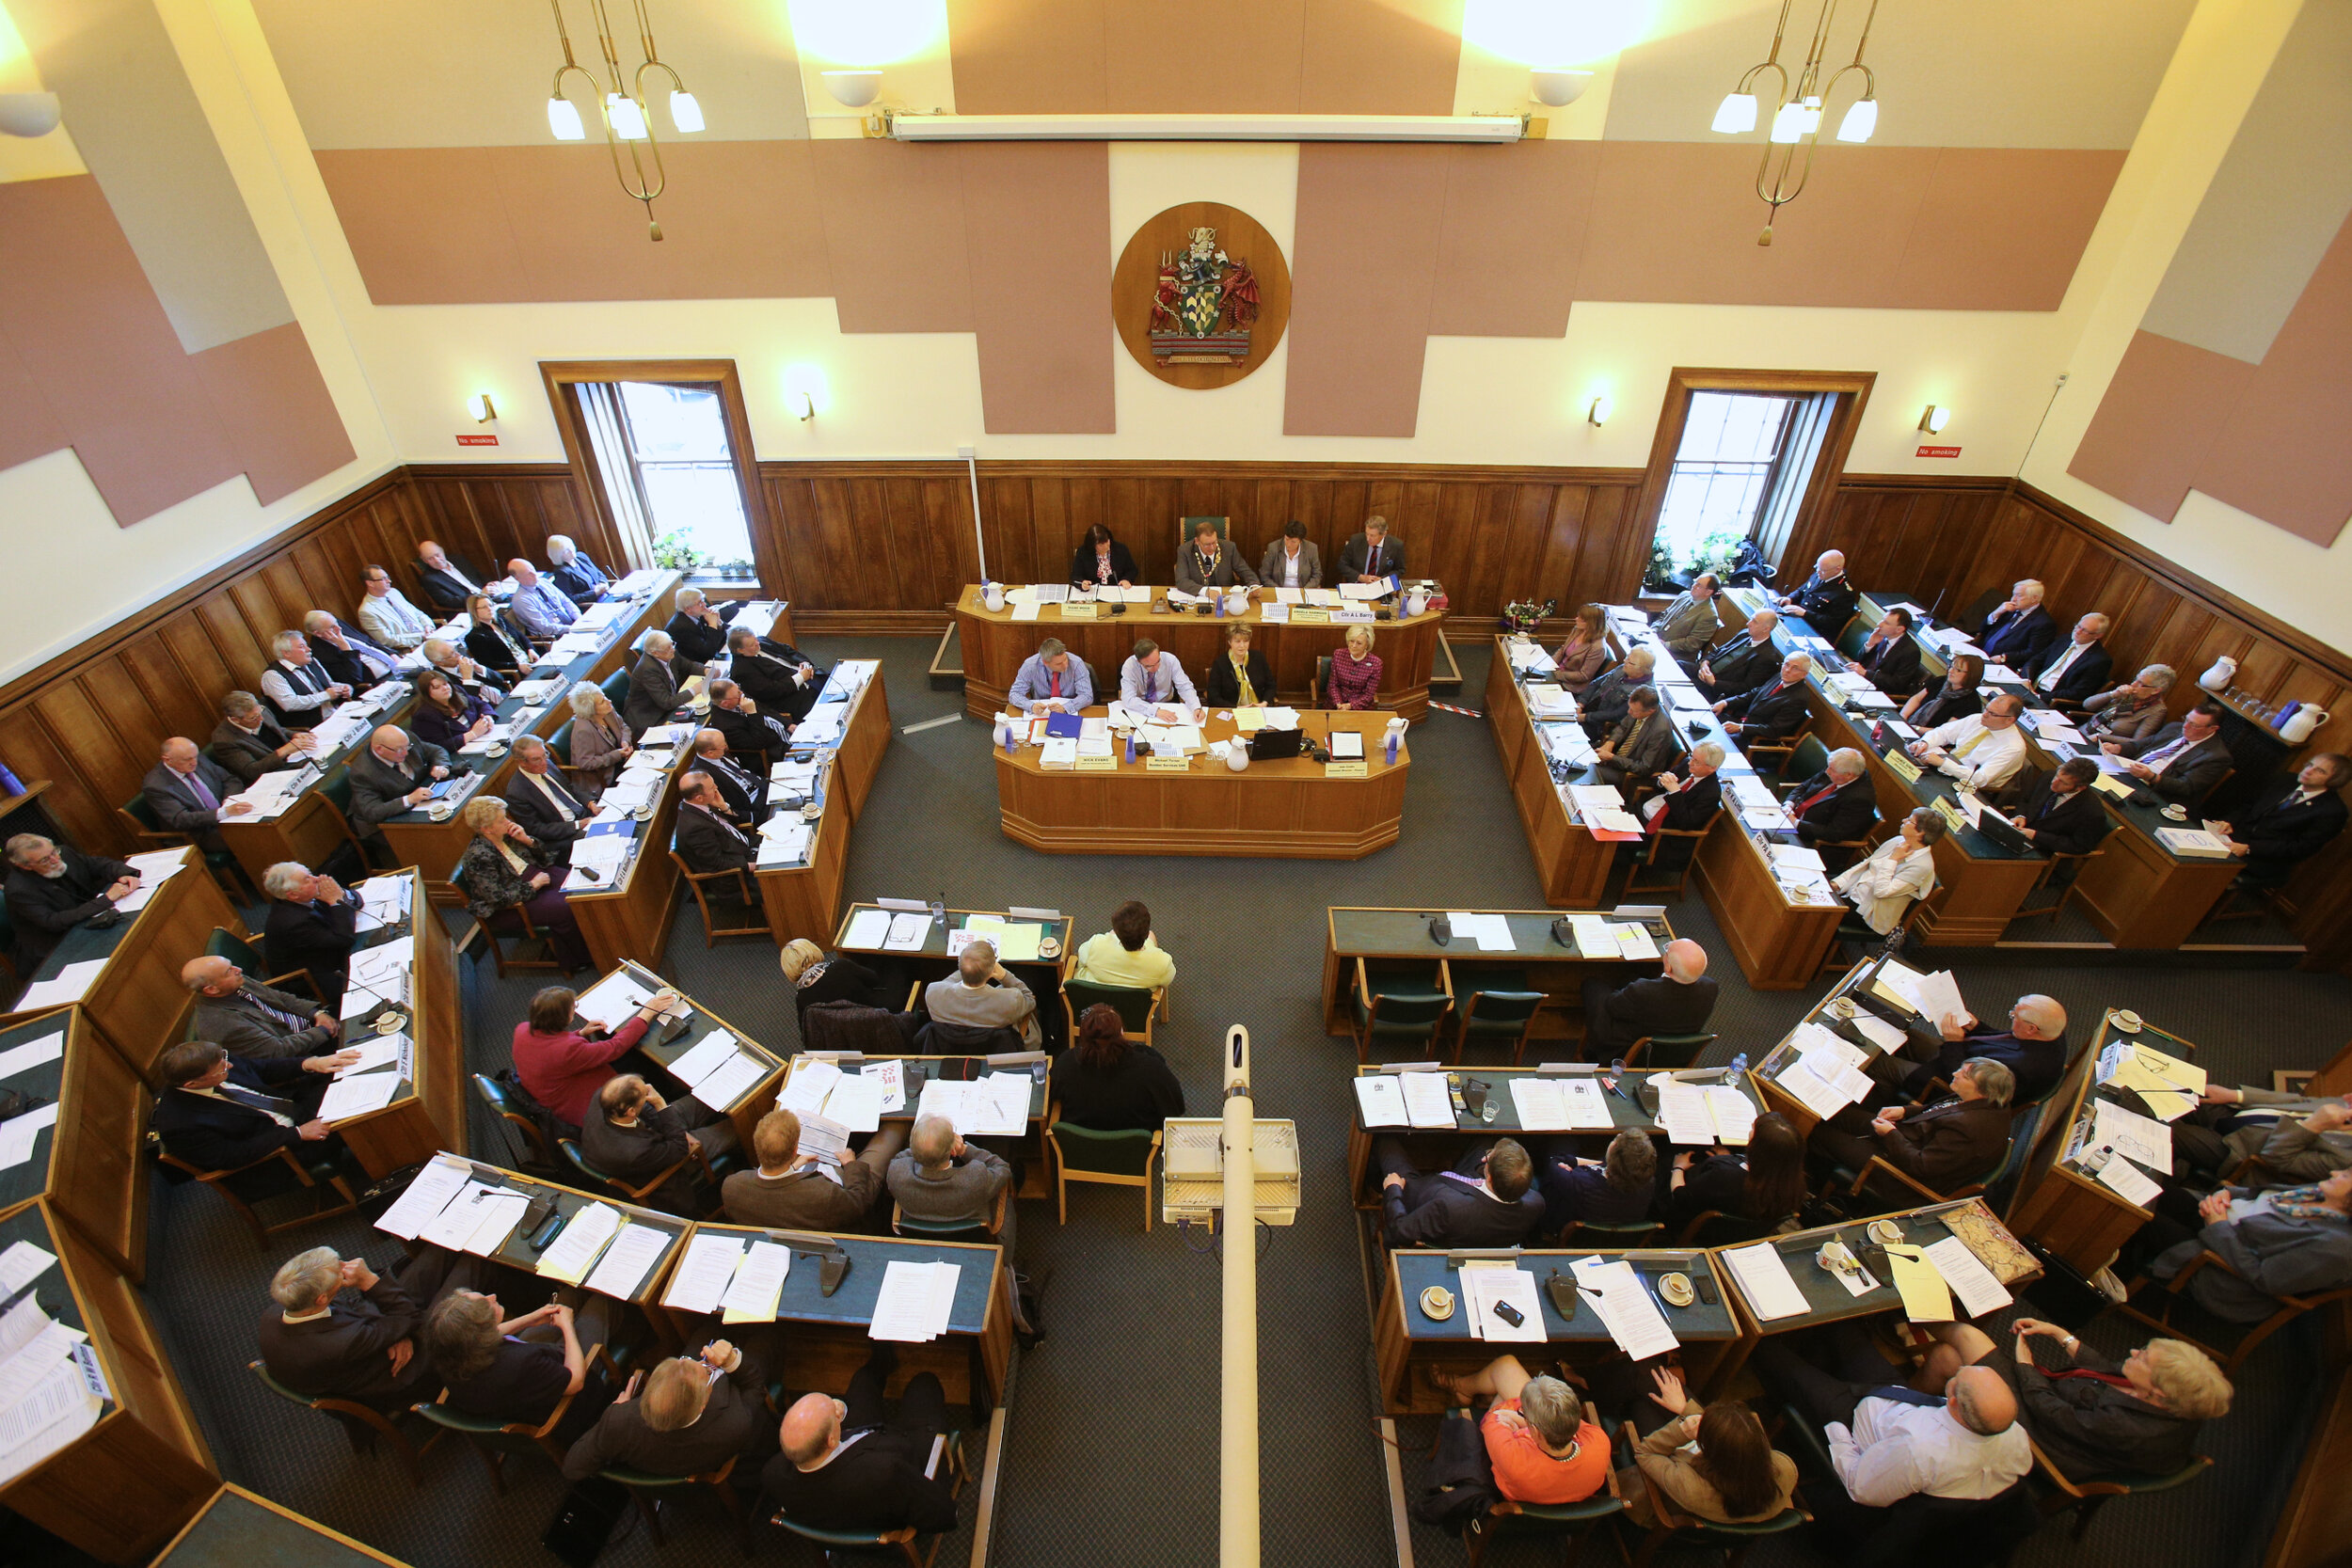 County councillors are seated for a session in an England county council,